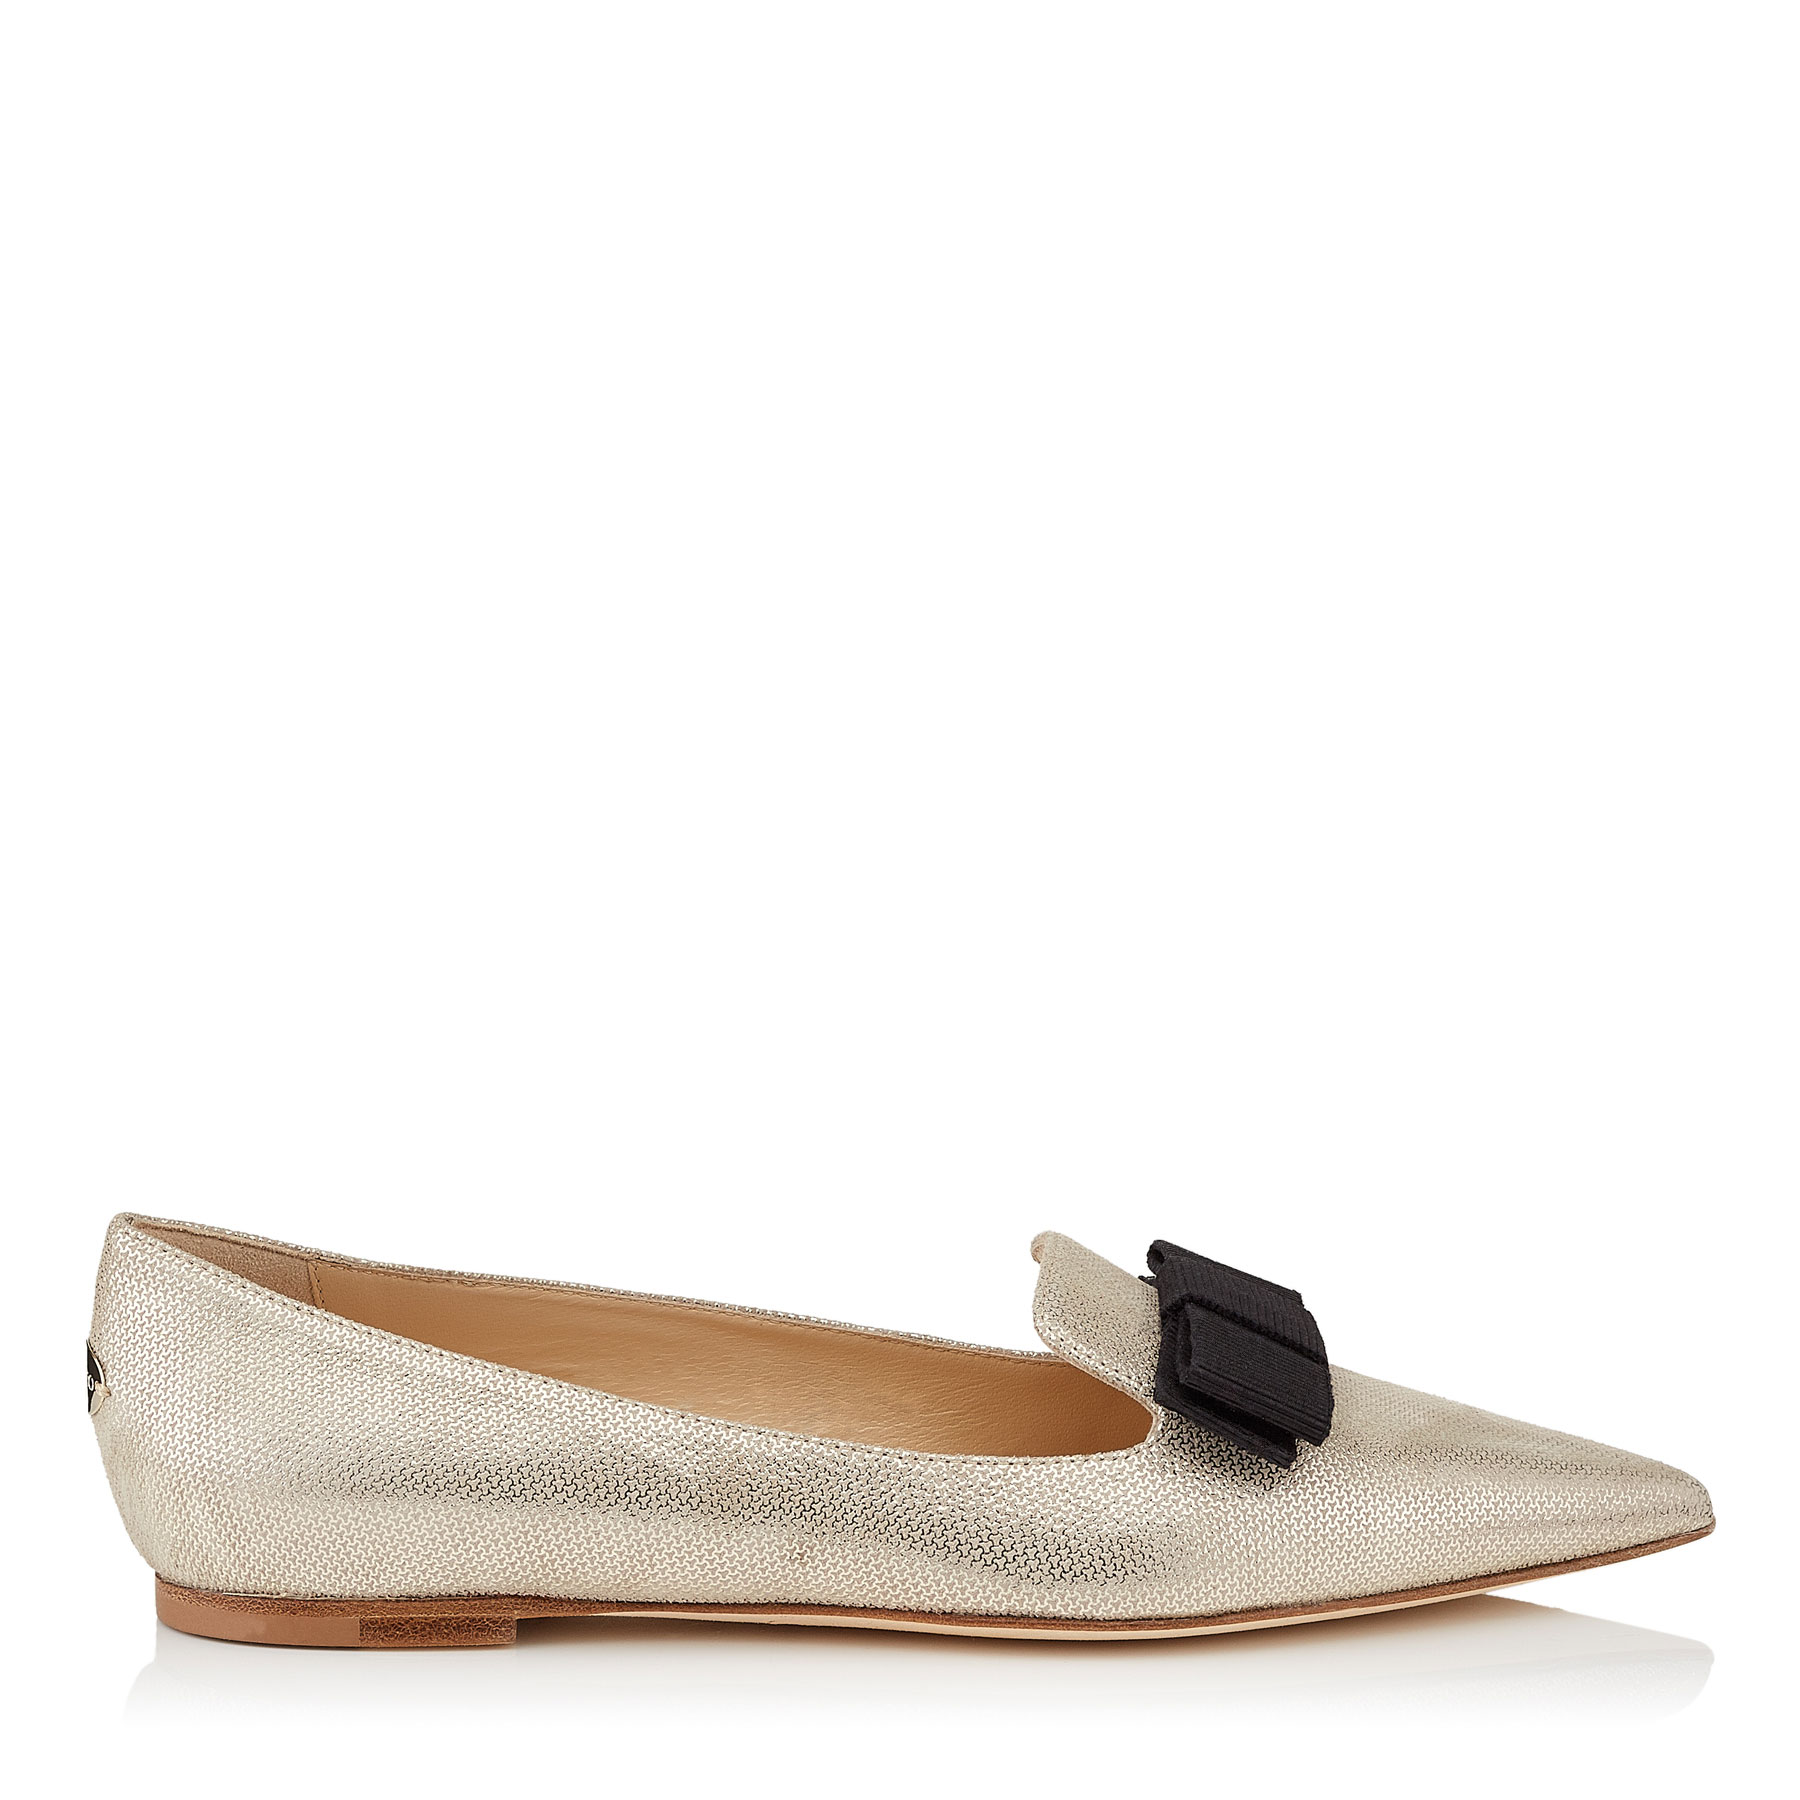 GALA Champagne Metallic Mini Print Leather Pointy Toe Flats with Bow Detail